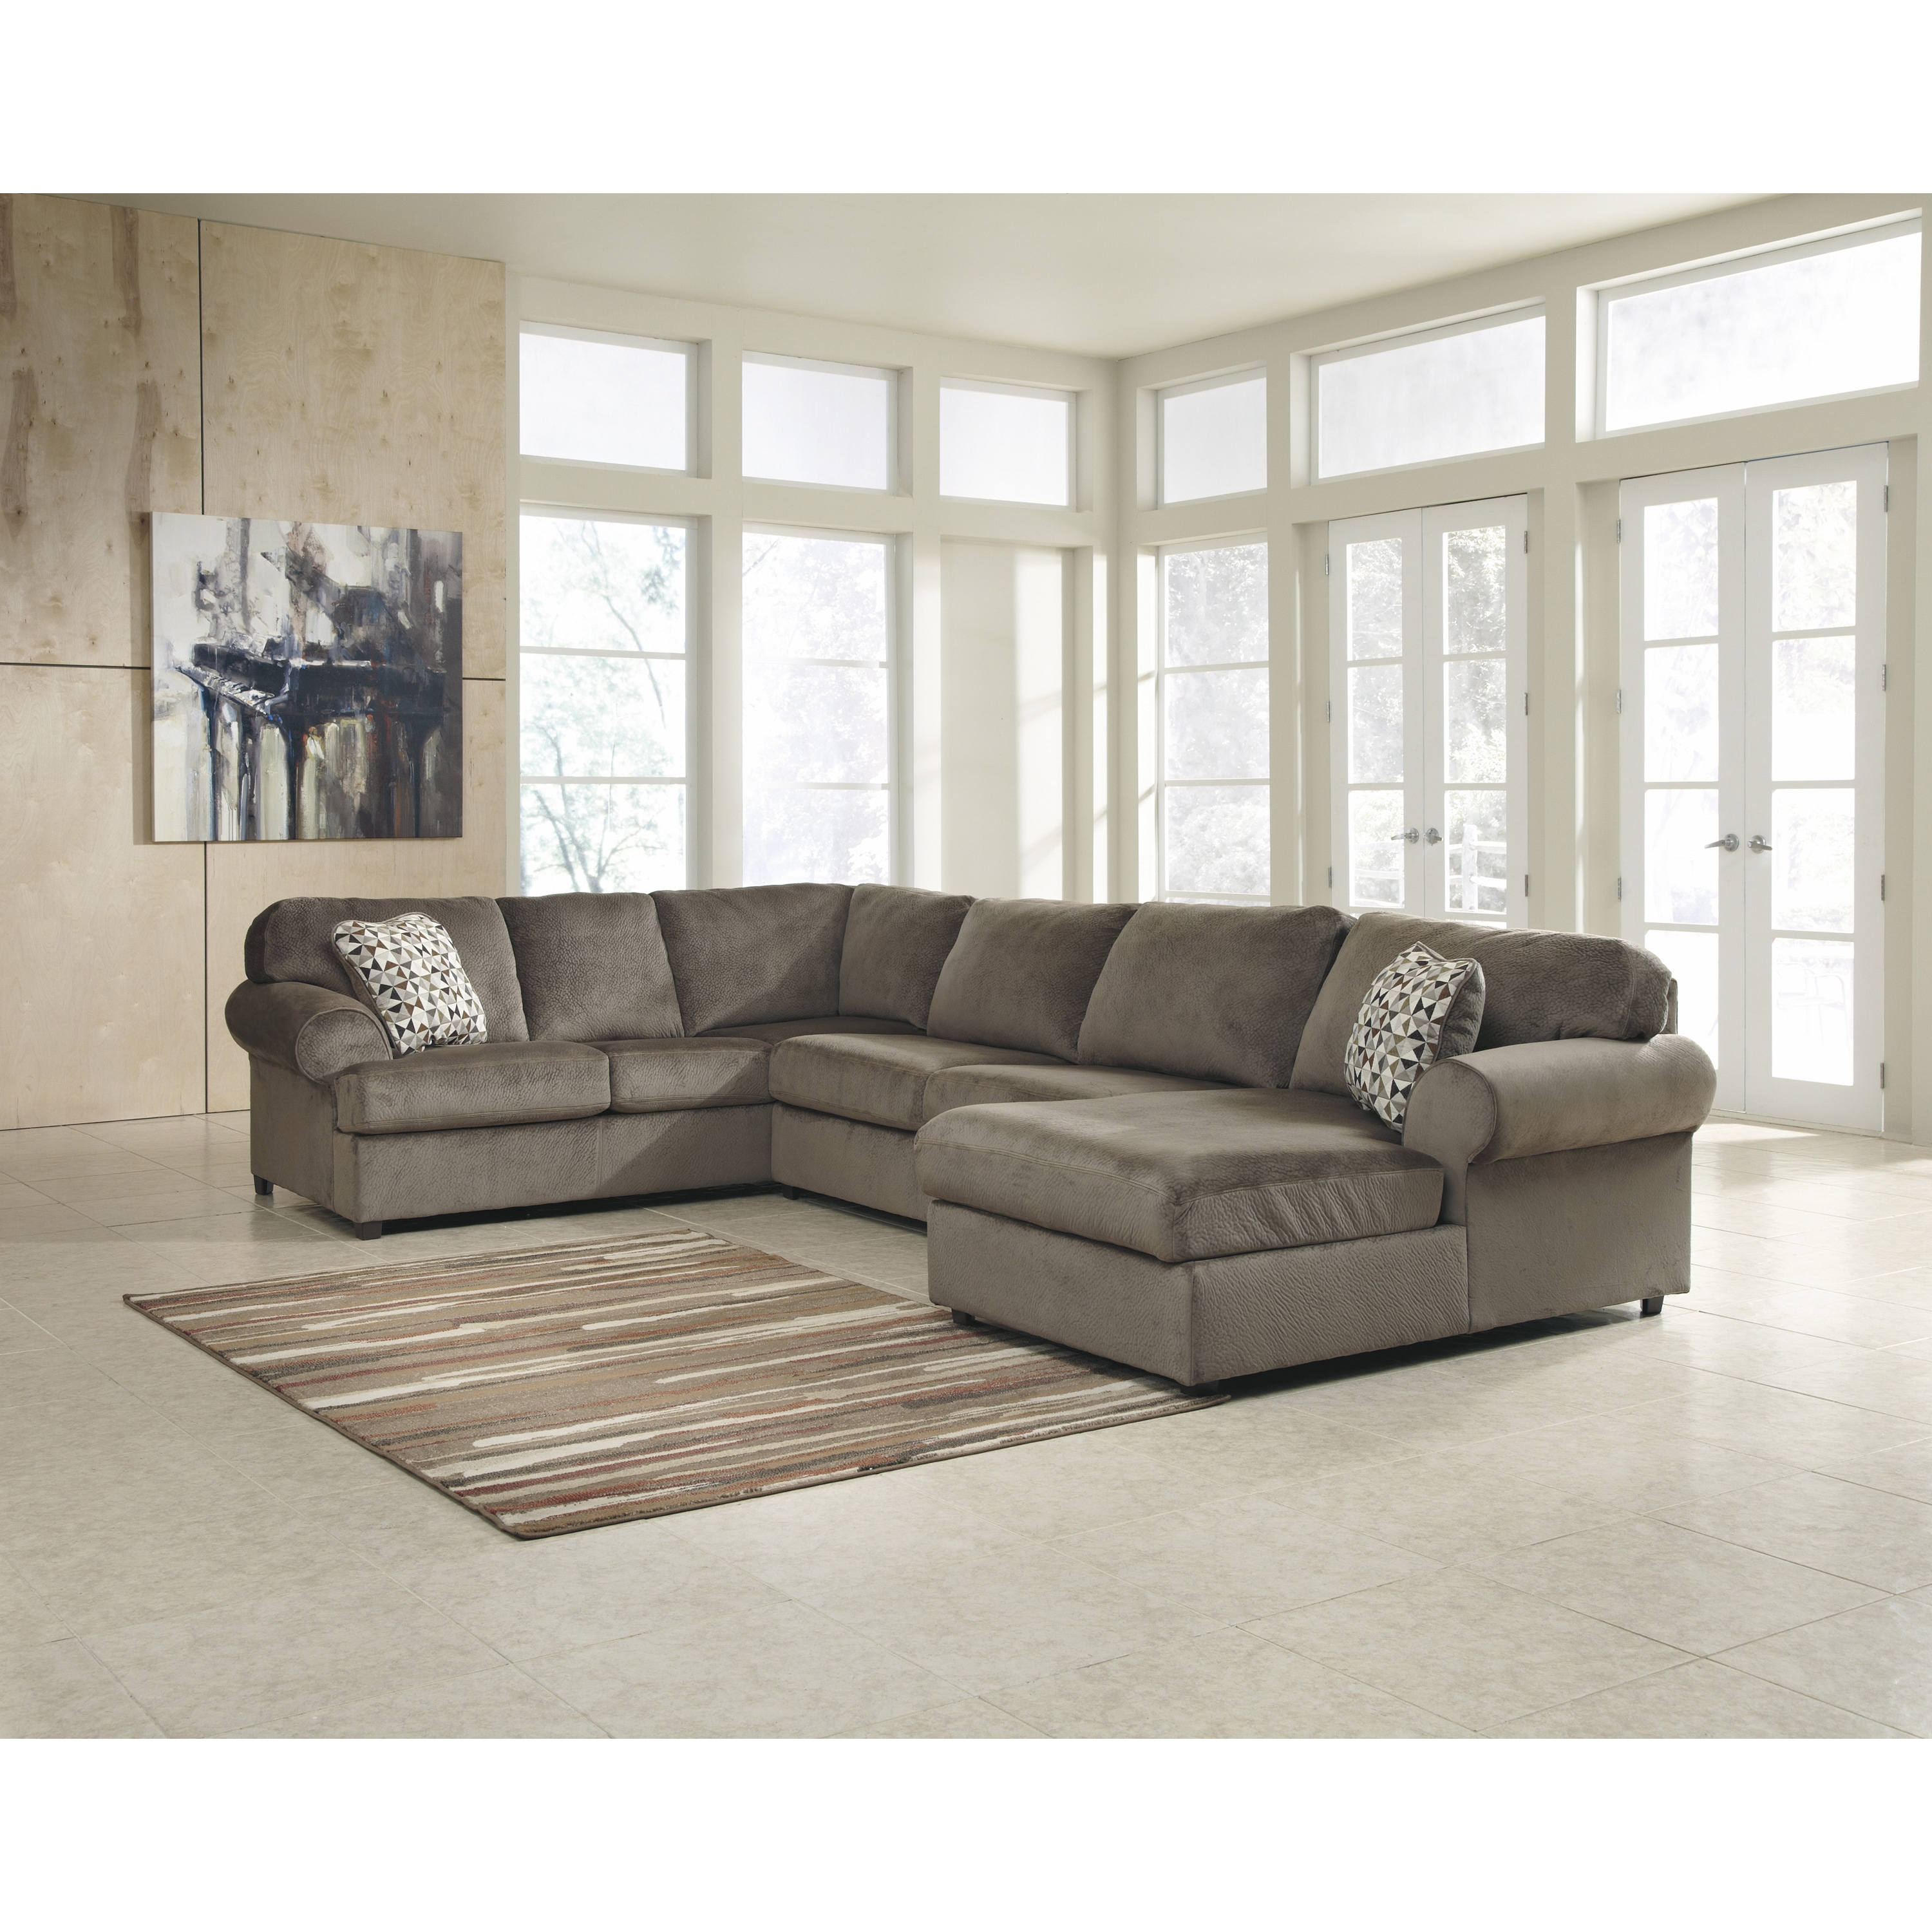 Shop Porch & Den Wells Oversized Fabric Sectional Sofa - On Sale ...